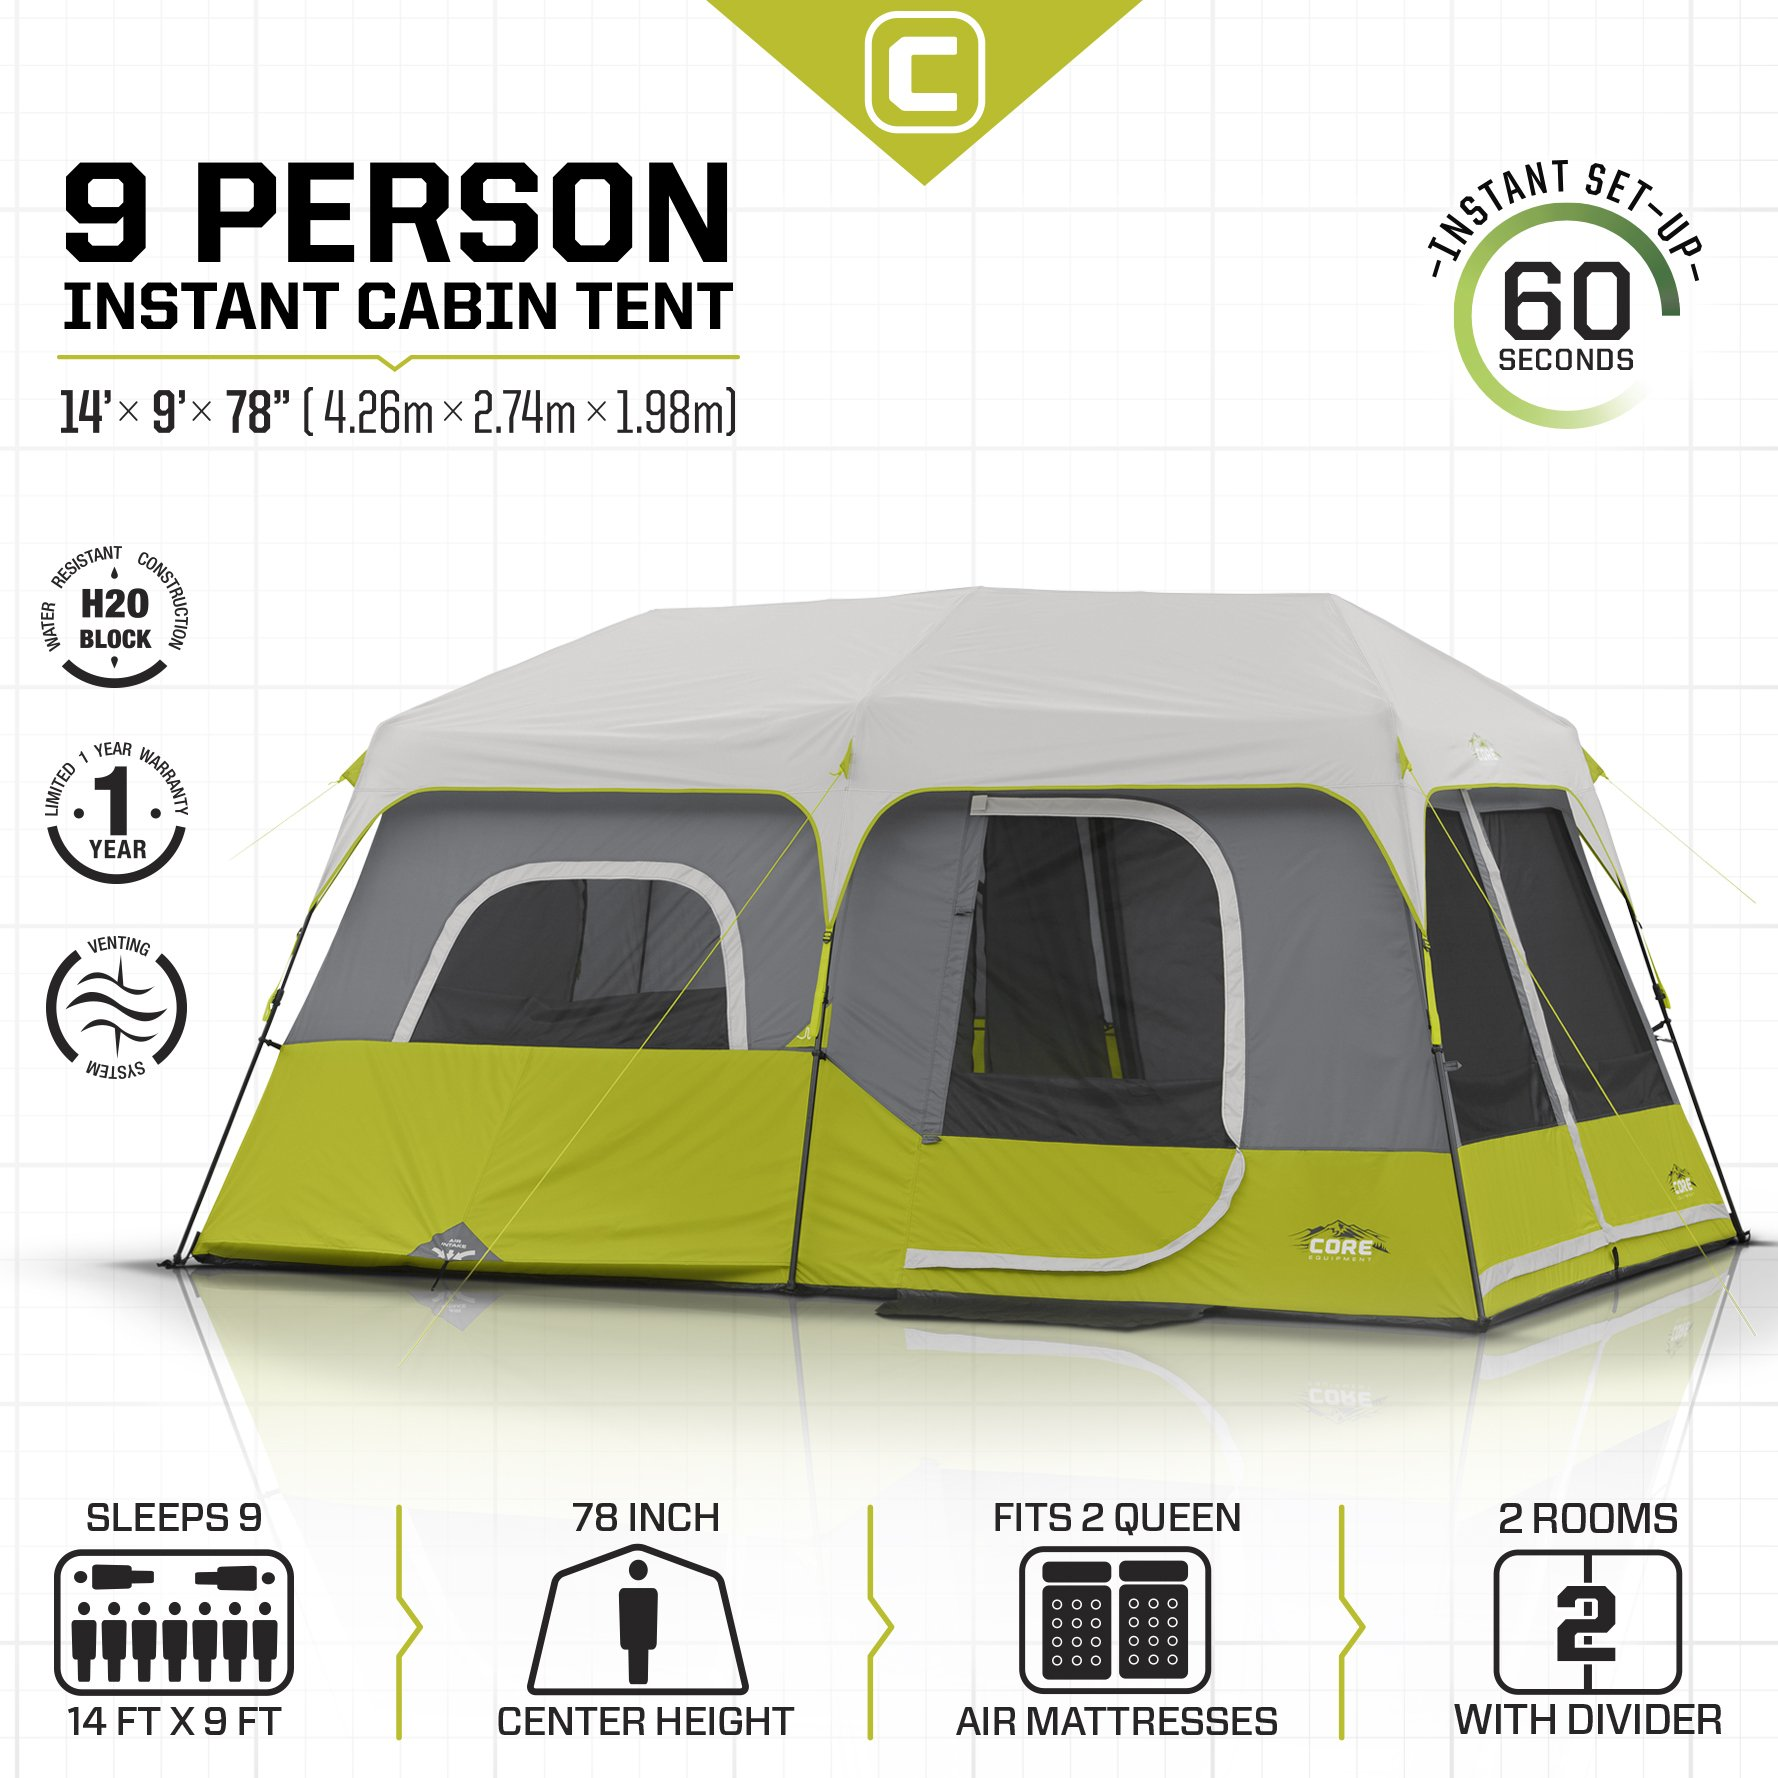 CORE 9 Person Instant Cabin Tent - 14' x 9' by CORE (Image #3)